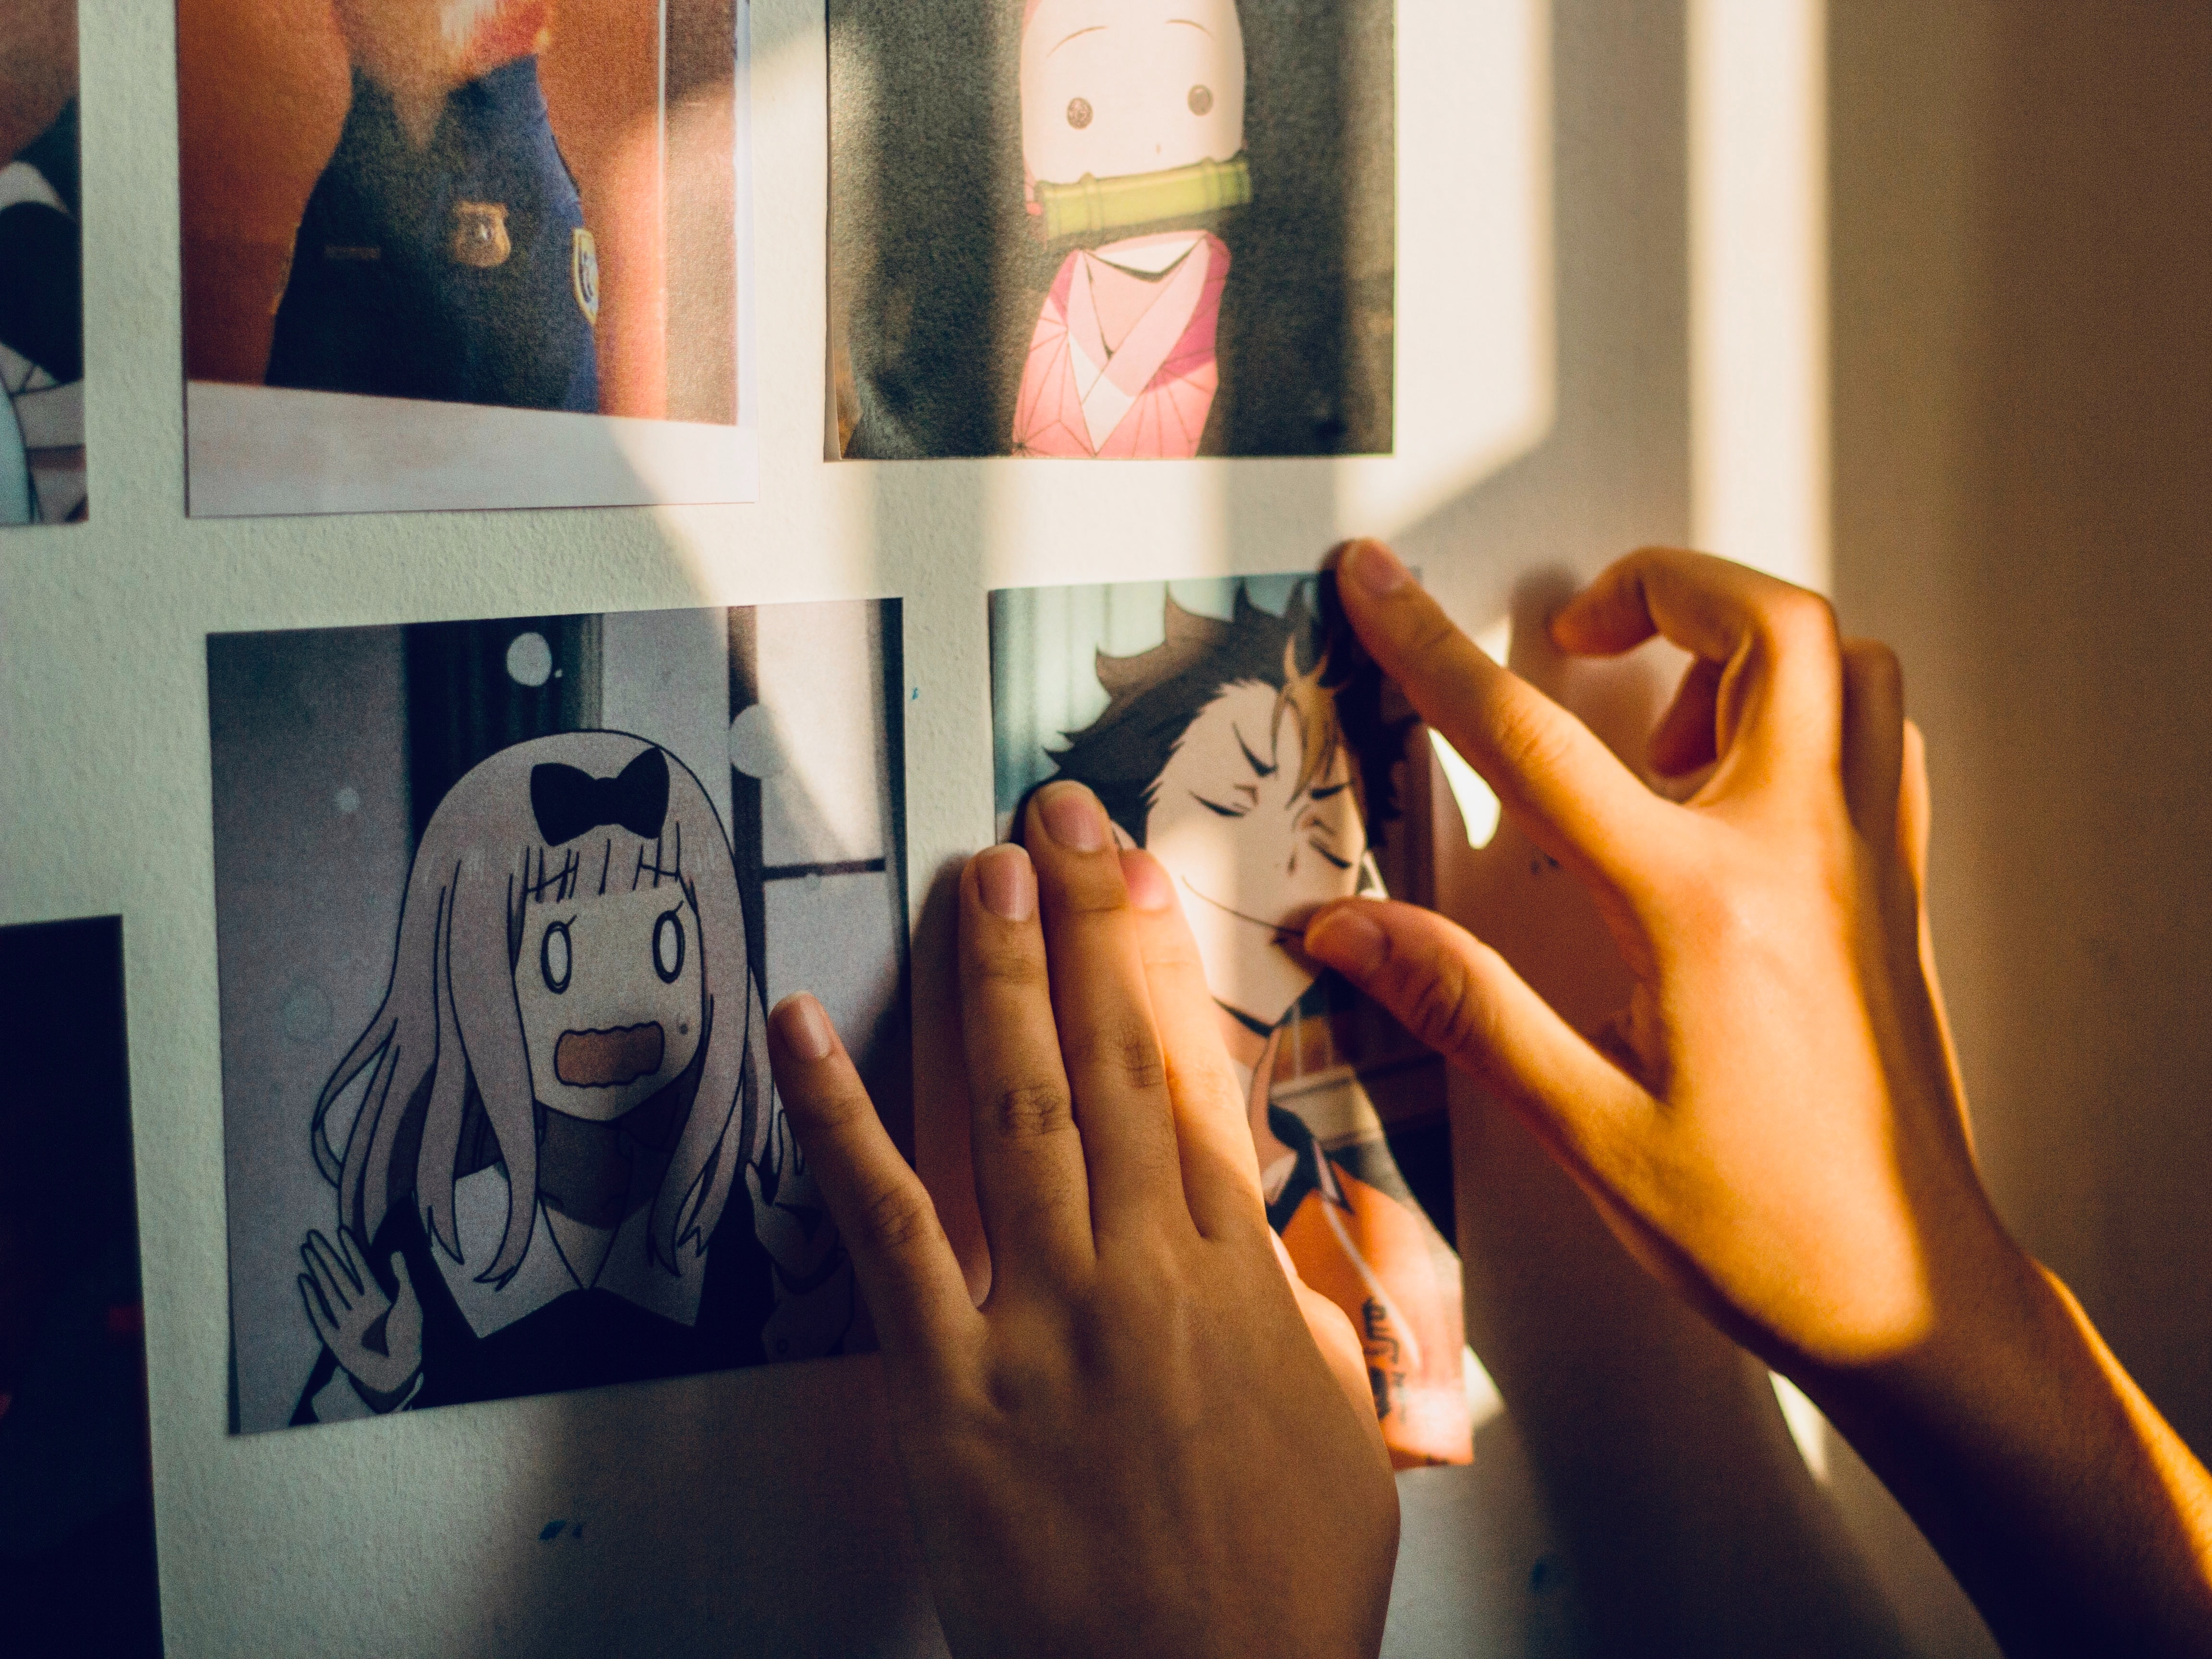 Photo of an anime fan hanging printed out pictures of anime characters on their wall. Photo courtesy of Gracia Dharma on Unsplash.